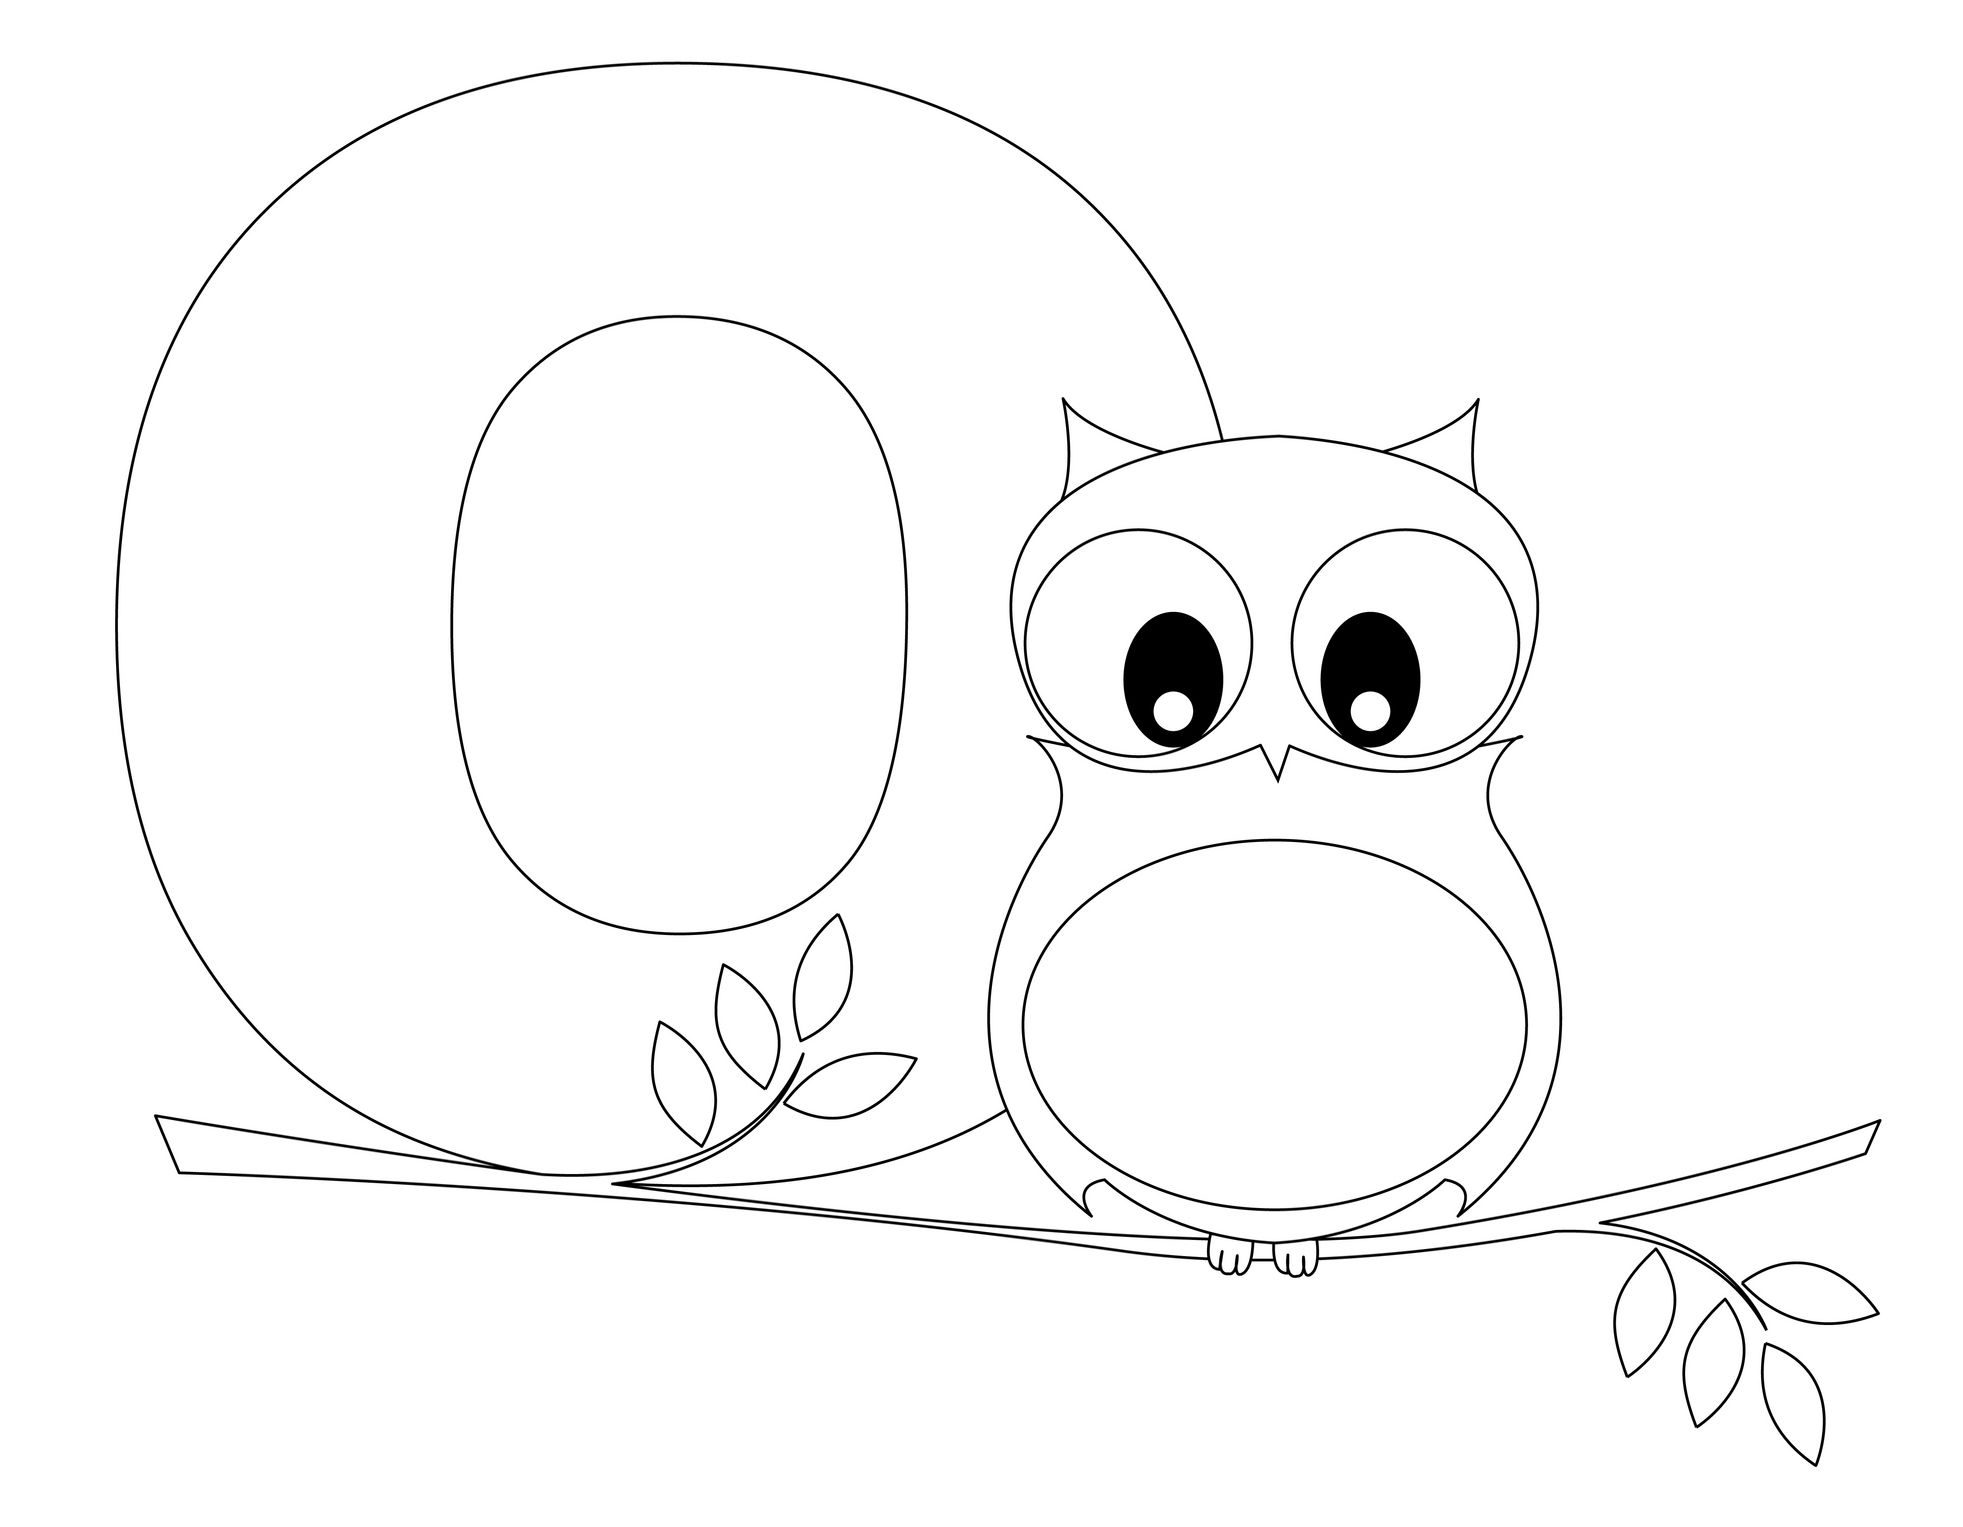 Animal Alphabet Letter O Is For Owl! Here's A Simple